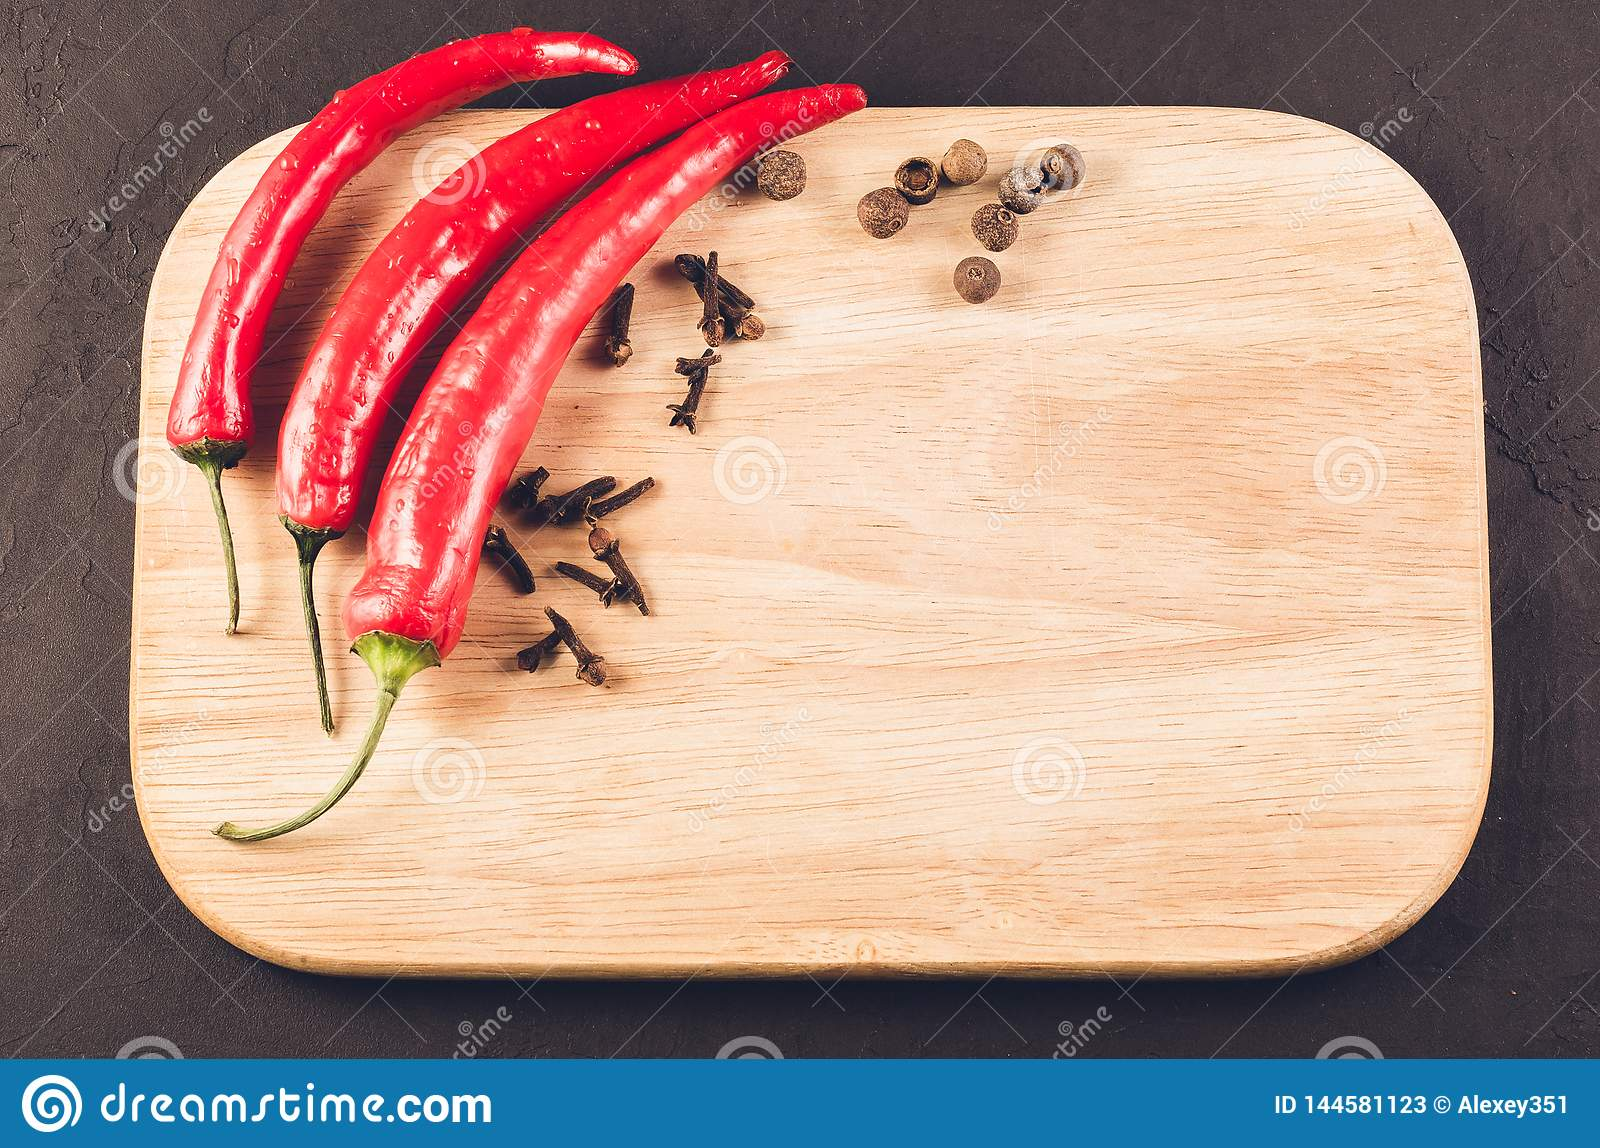 Red hot chili peppers and spices on a empty cutting board/Red hot chili peppers and spices on a empty cutting board on a dark